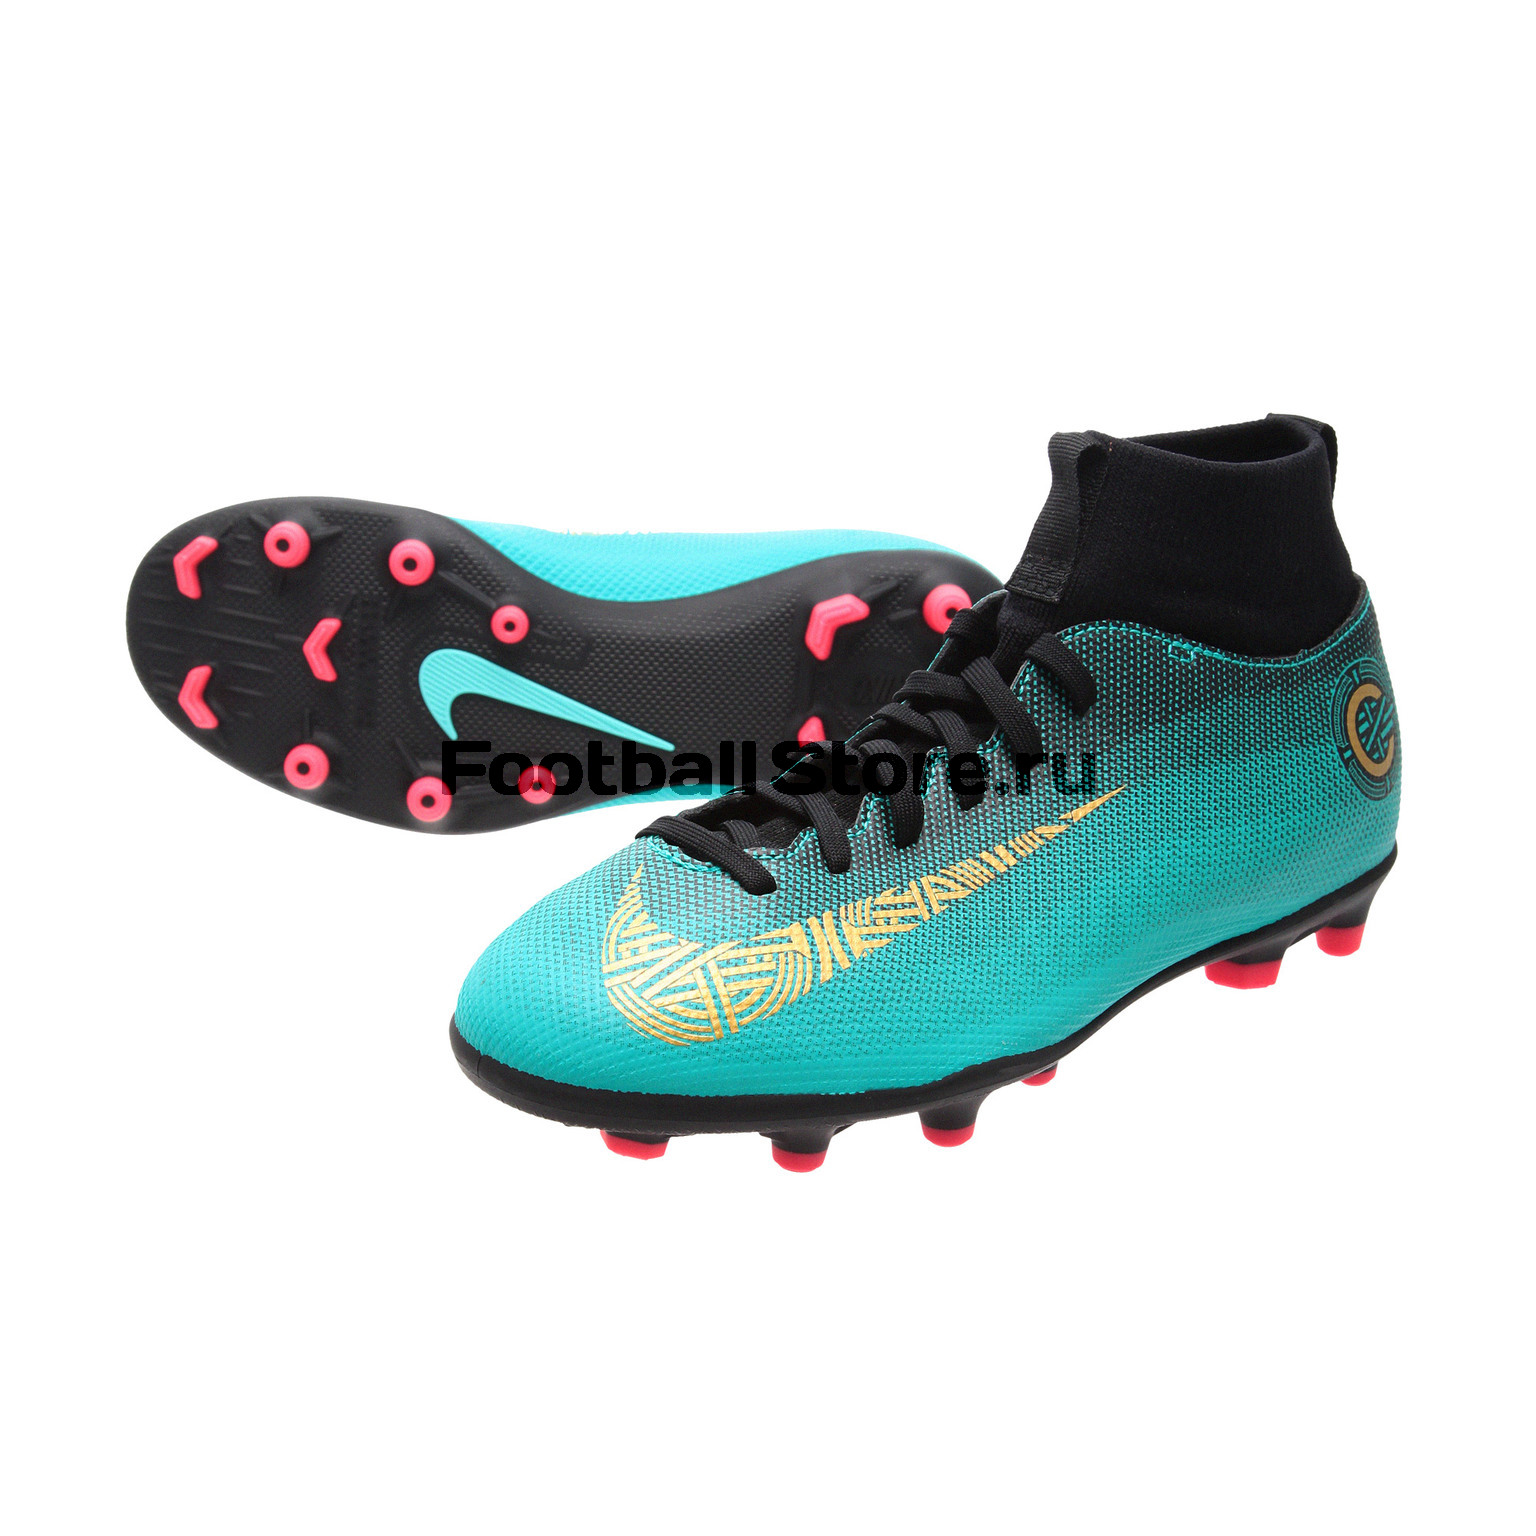 Бутсы Nike JR Superfly 6 Club CR7 FG/MG AJ3115-390 бутсы nike superfly academy gs cr7 jr fg mg aj3111 390